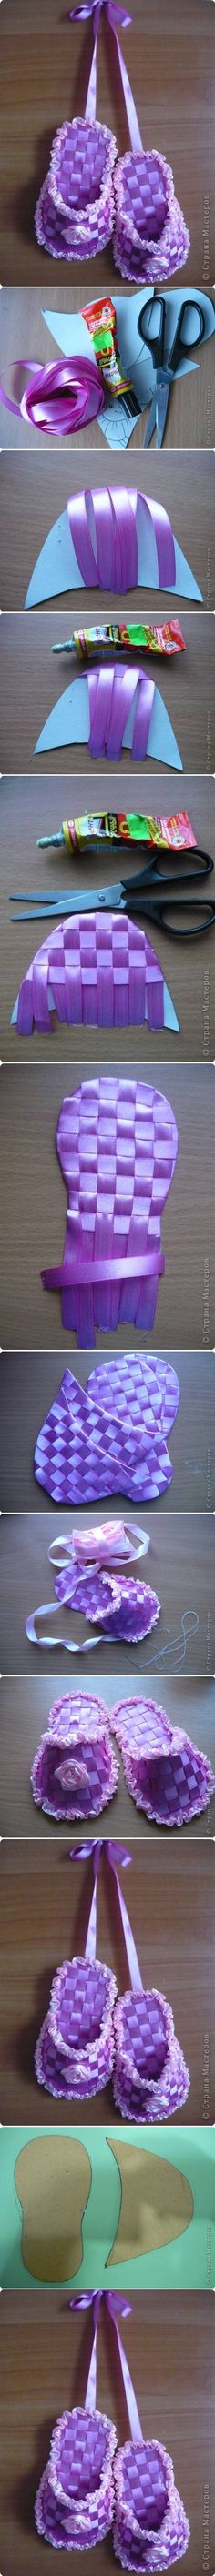 DIY Gift Ribbon Slippers DIY Projects